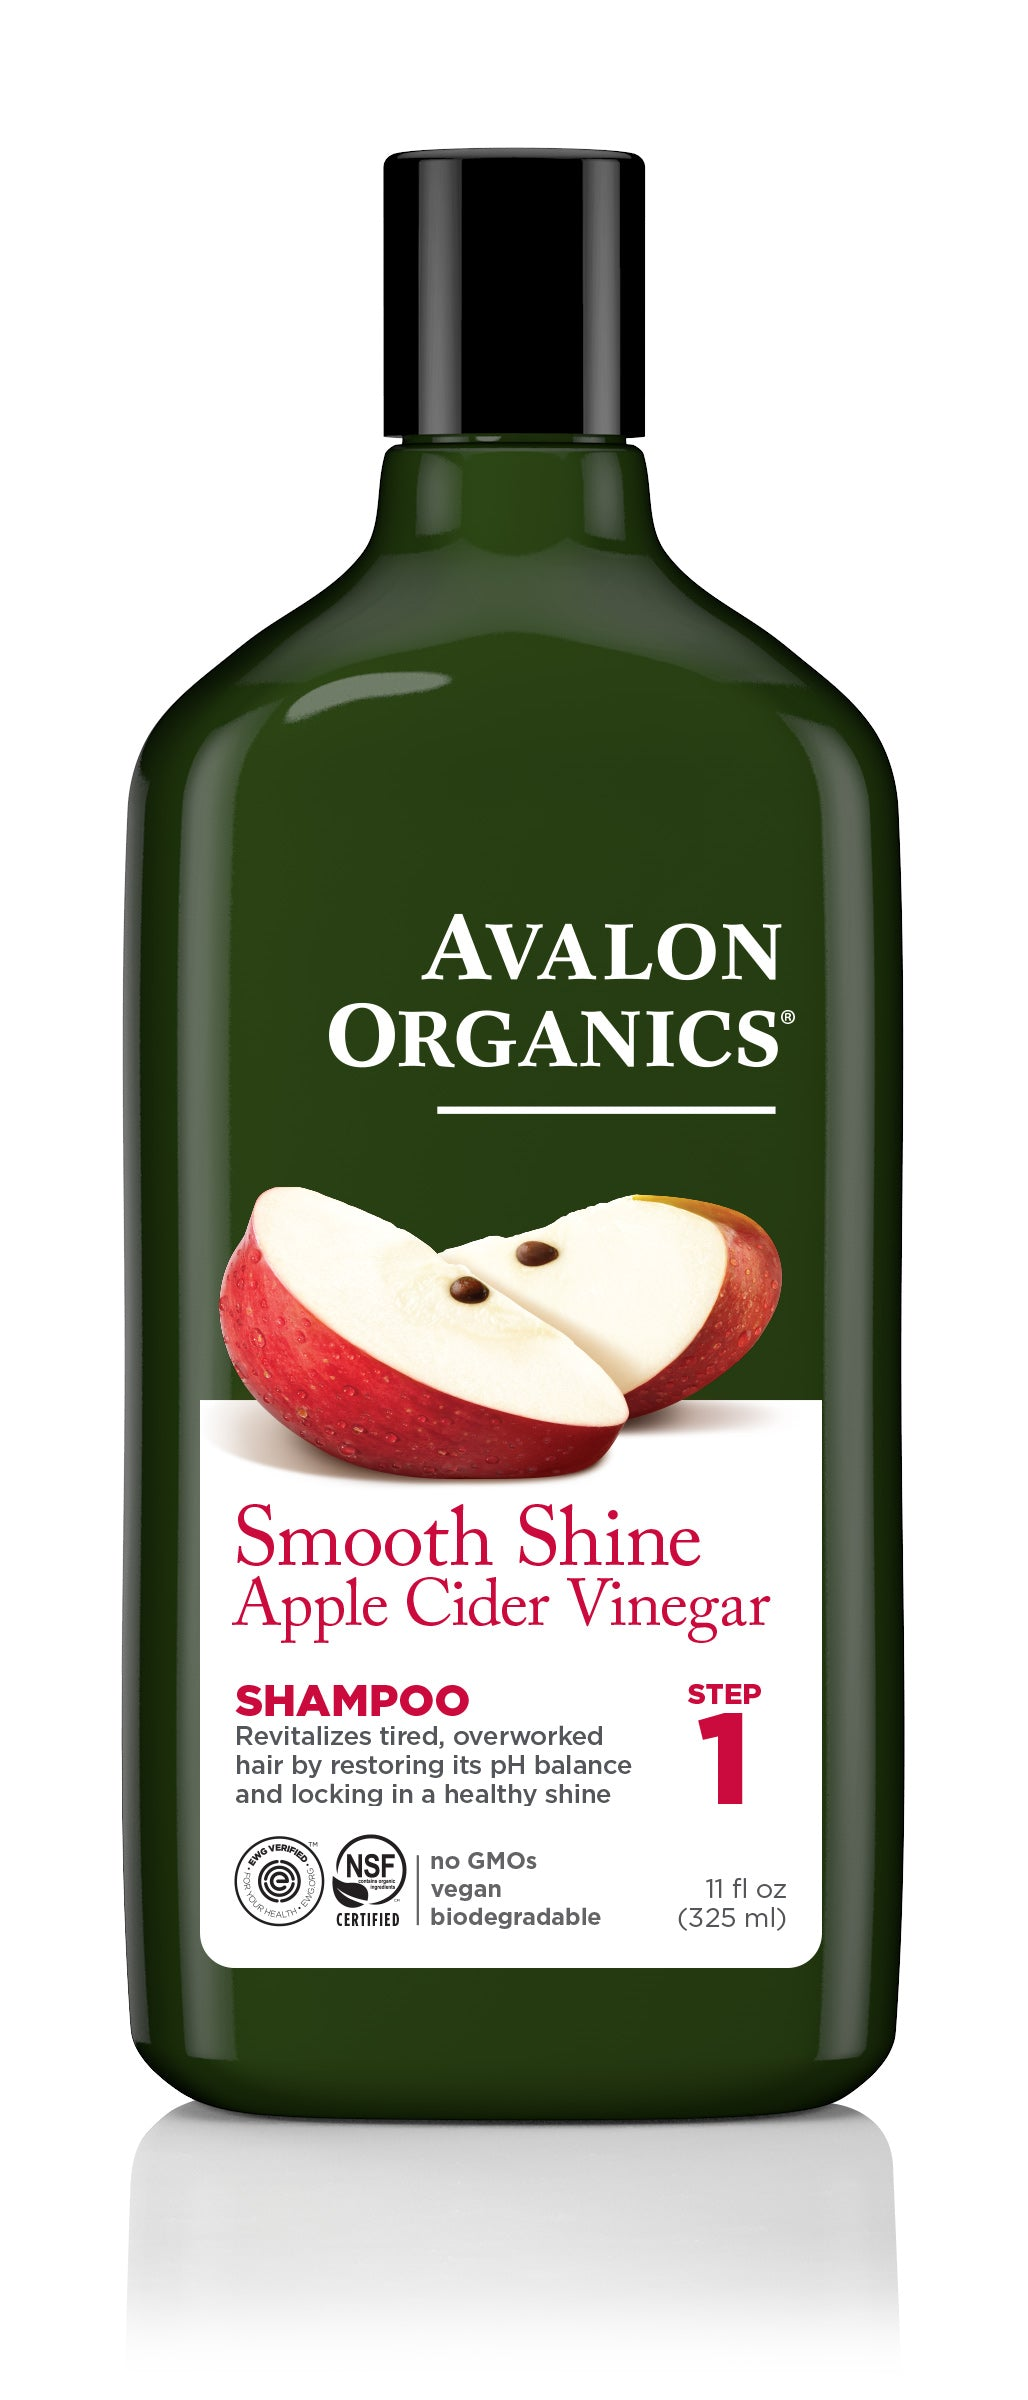 Smooth Shine Apple Cider Vinegar